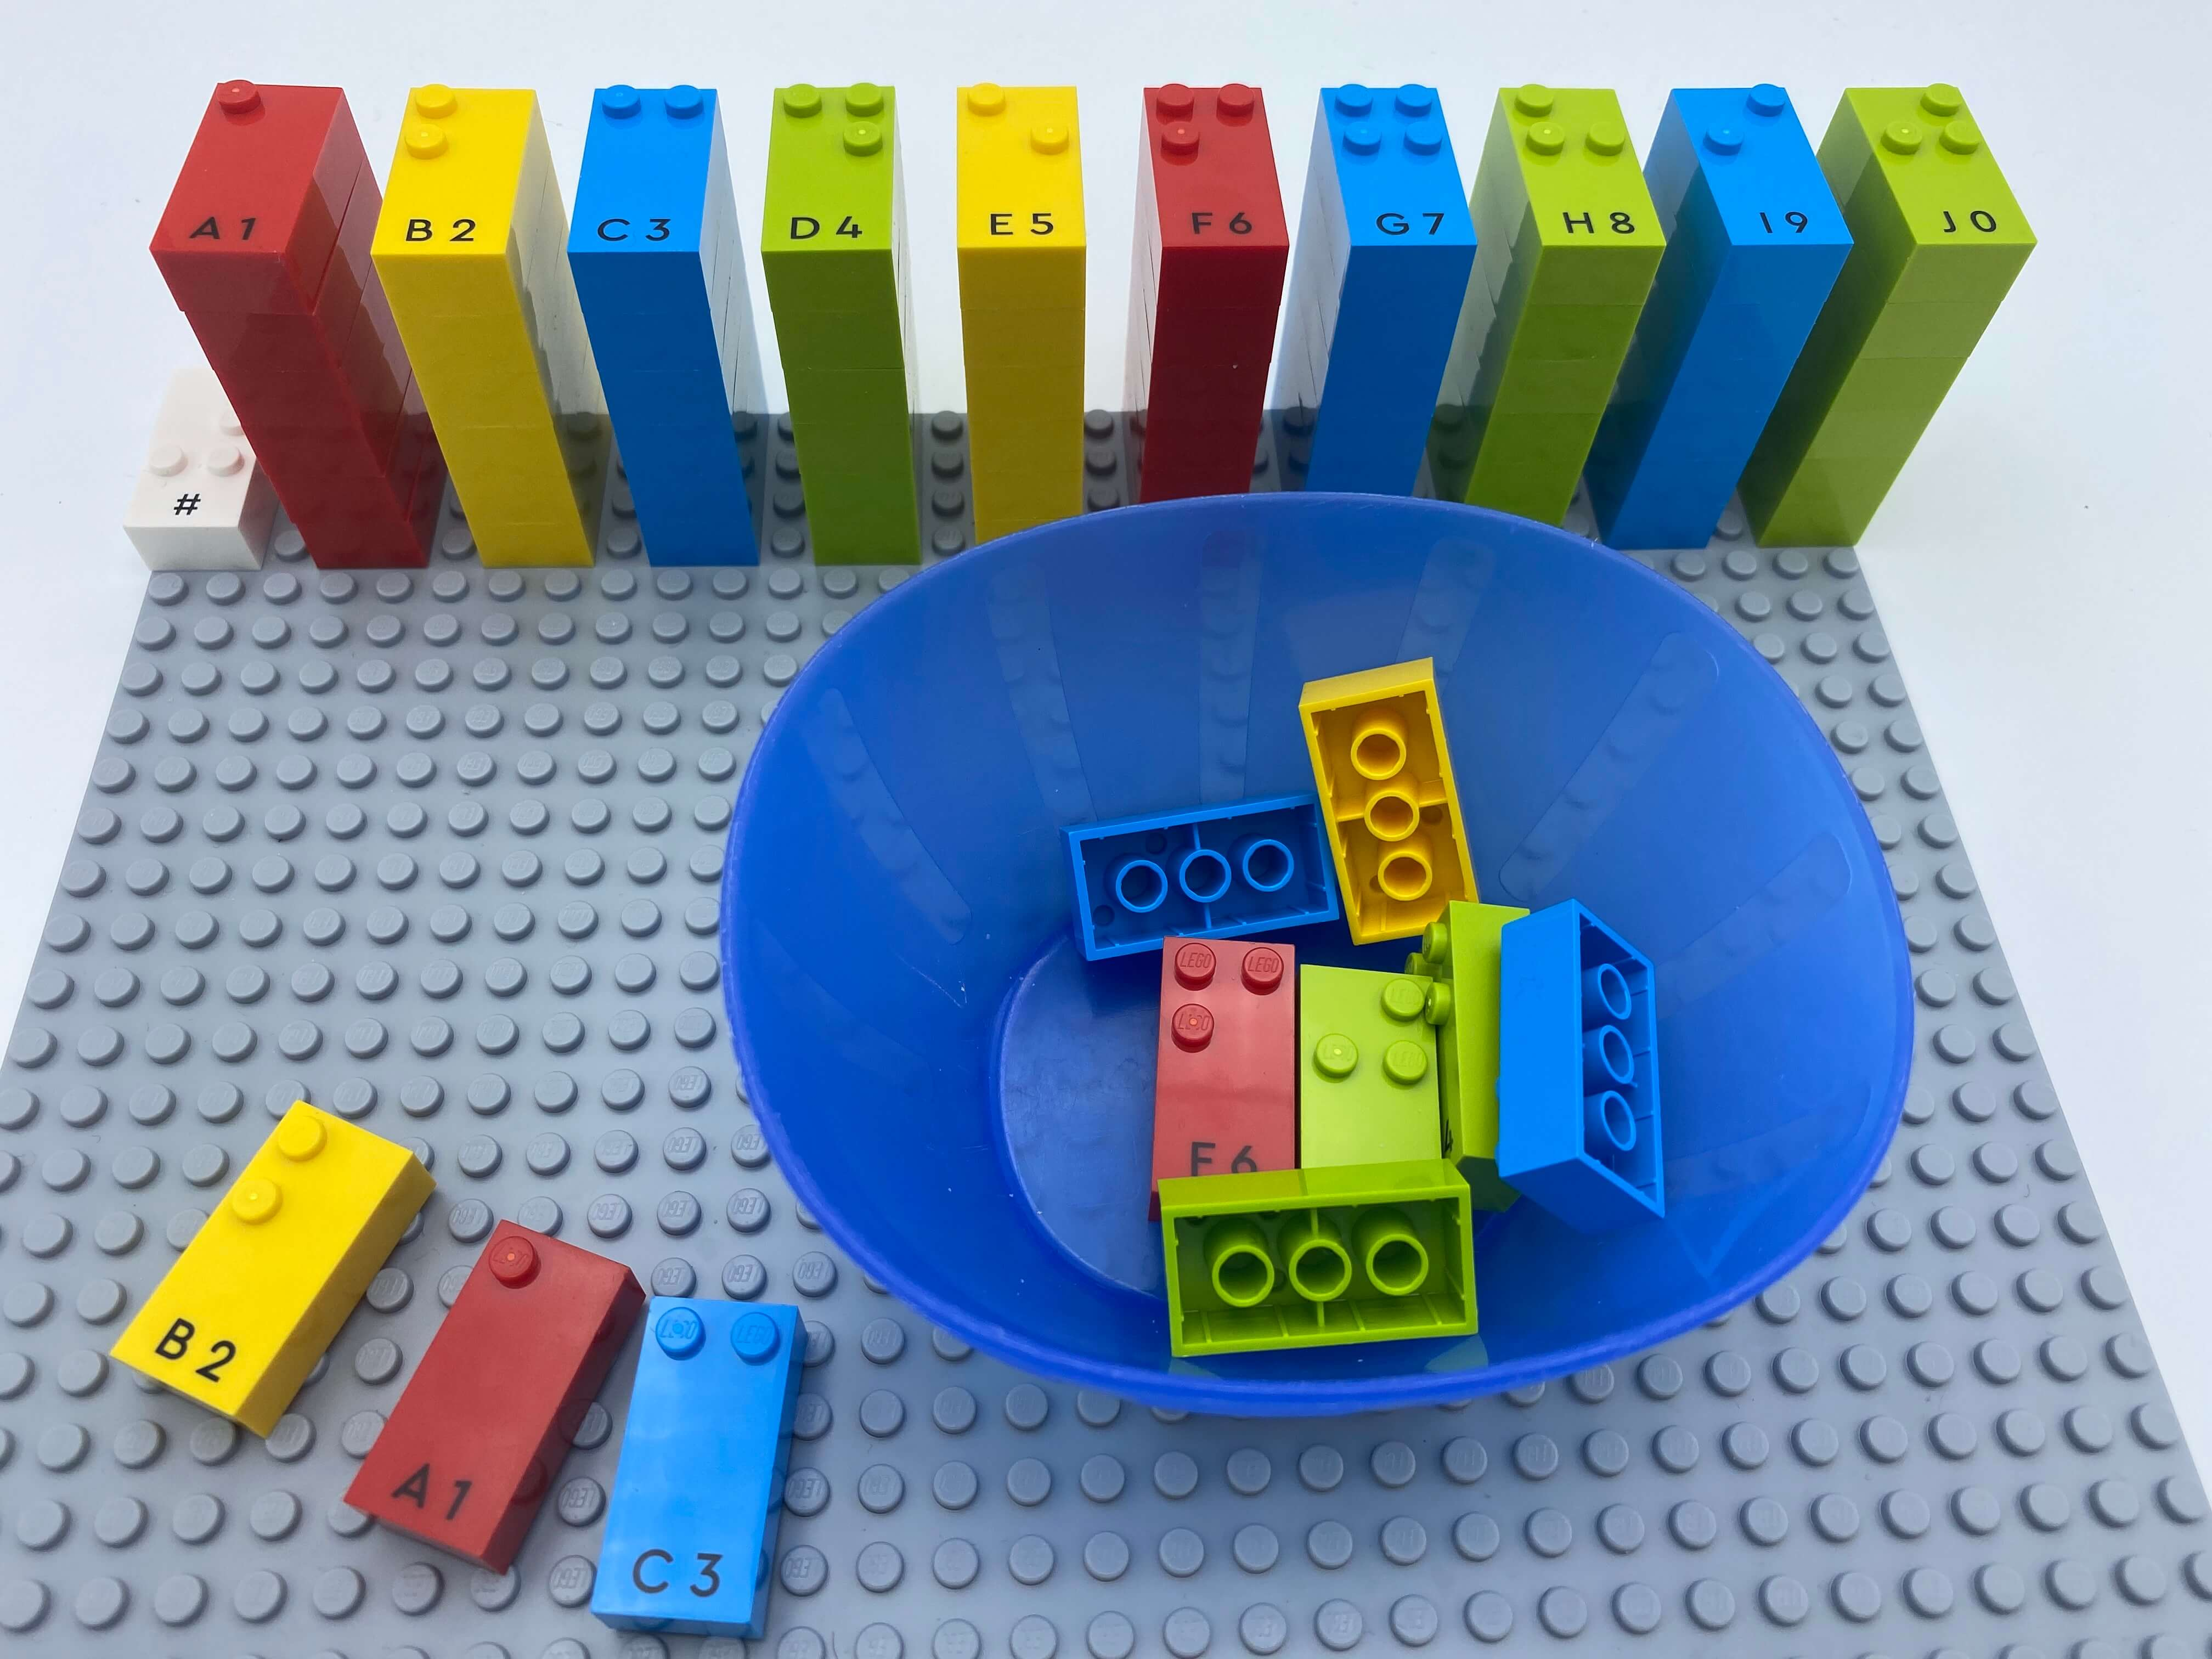 Numbers sign brick and 10 towers of number bricks aligned on the base plate. a bowl with bricks and 3 number bricks out of the bowl: 2, 1, 3.